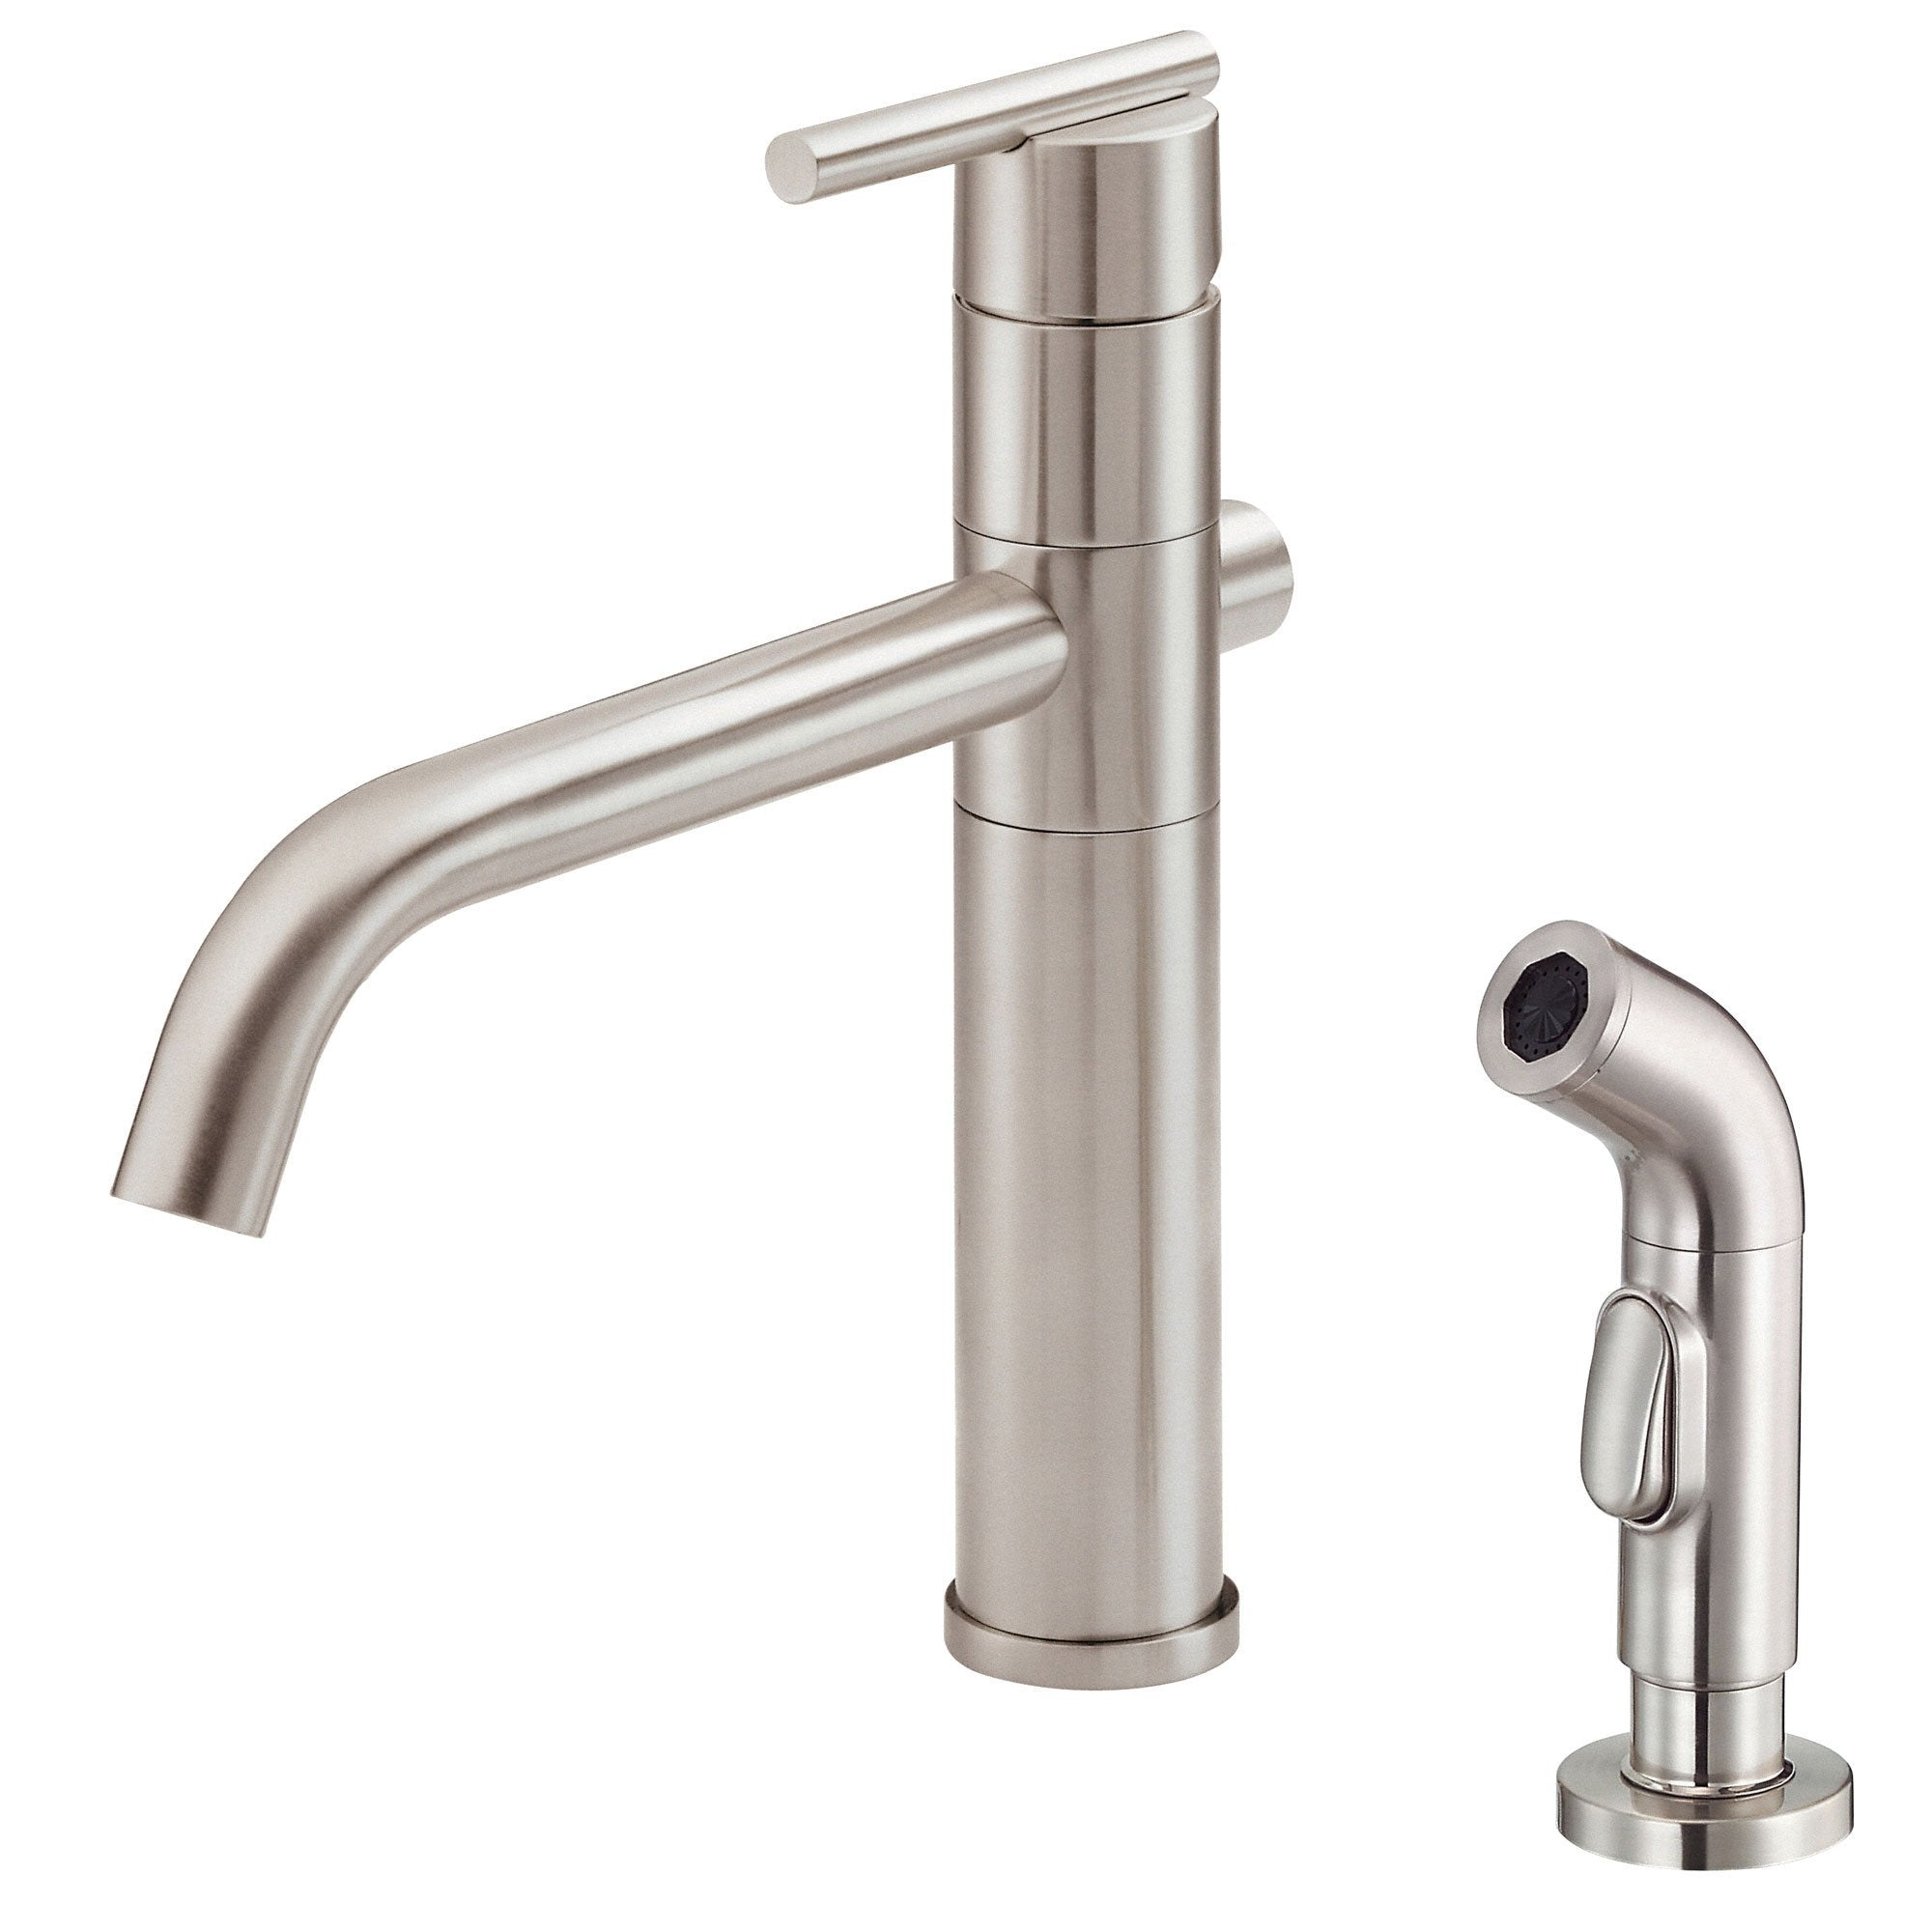 Danze Parma Stainless Steel Single Handle Modern Kitchen Faucet with Sprayer